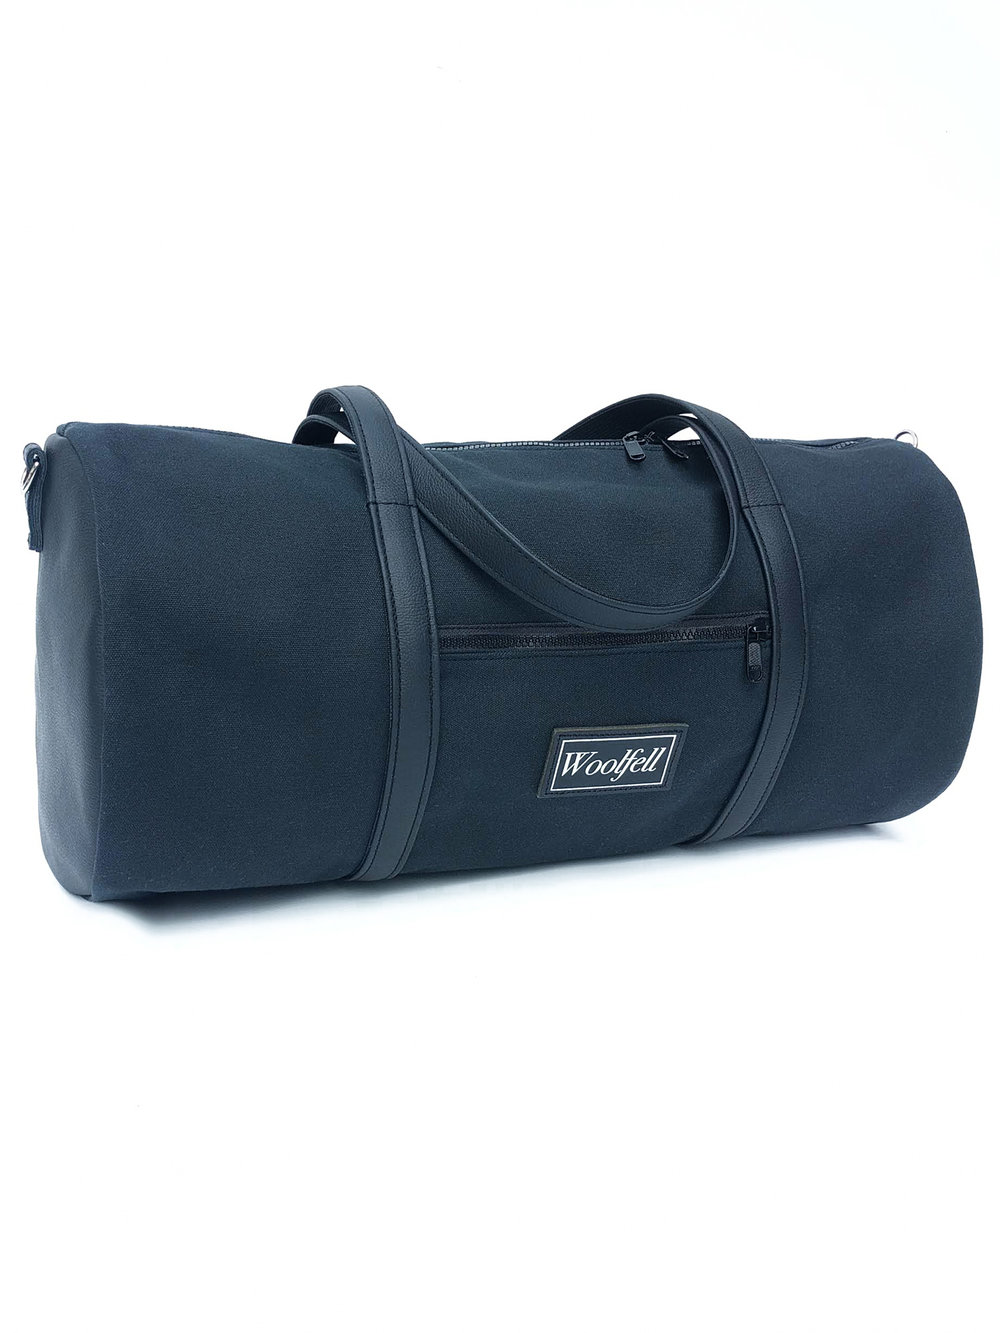 Barrel bag - more colors available260.00$